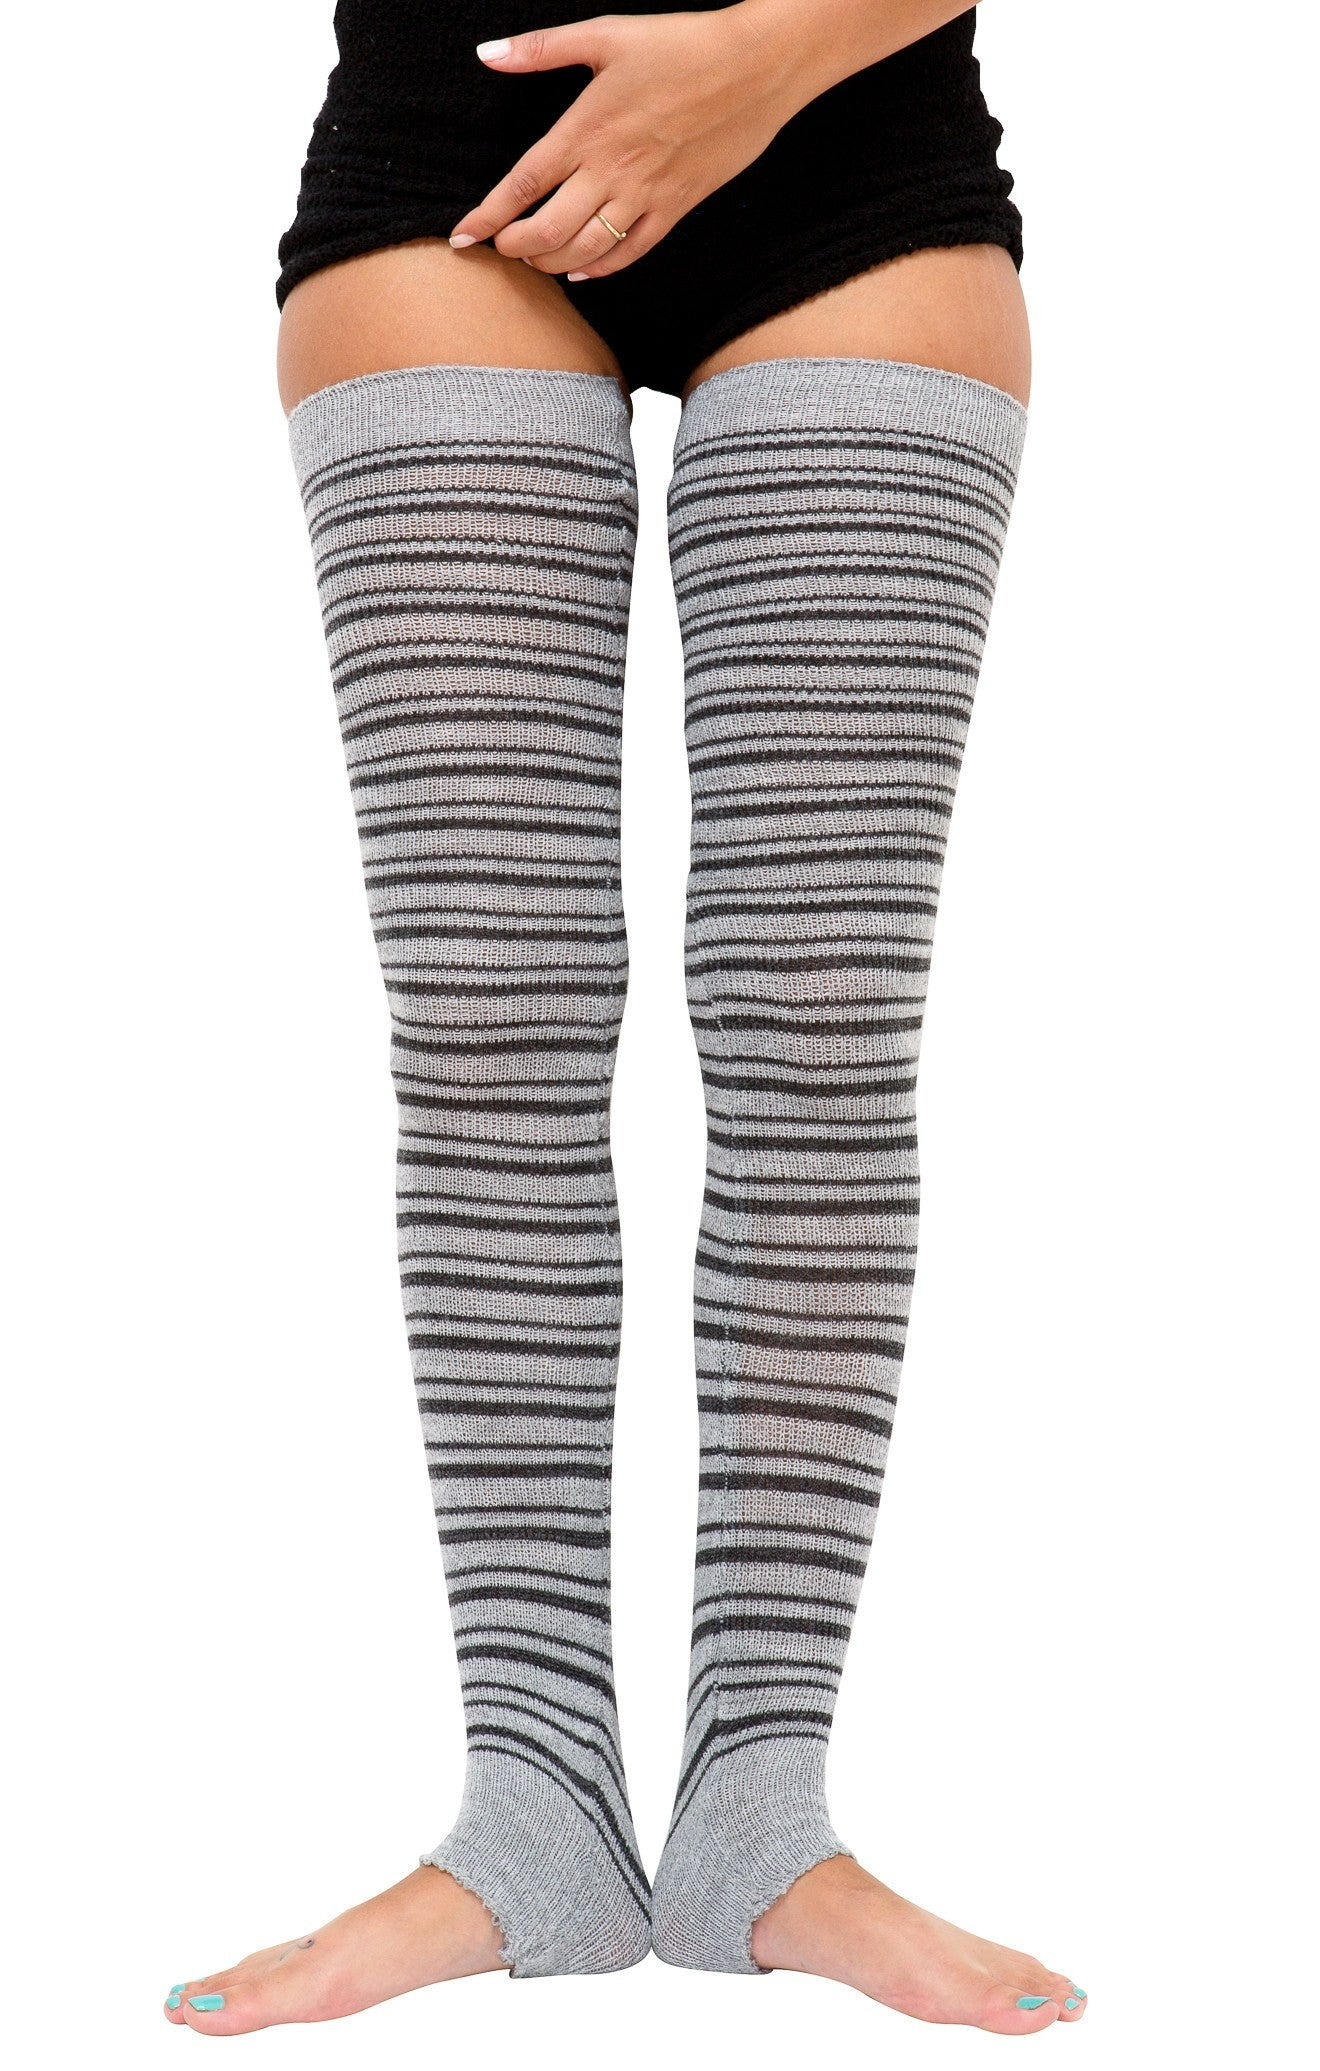 60039d79544be Striped Leg Warmers Extra Long 40 Inch, 30 Inch Thigh High's & 16 Inch  Stretch